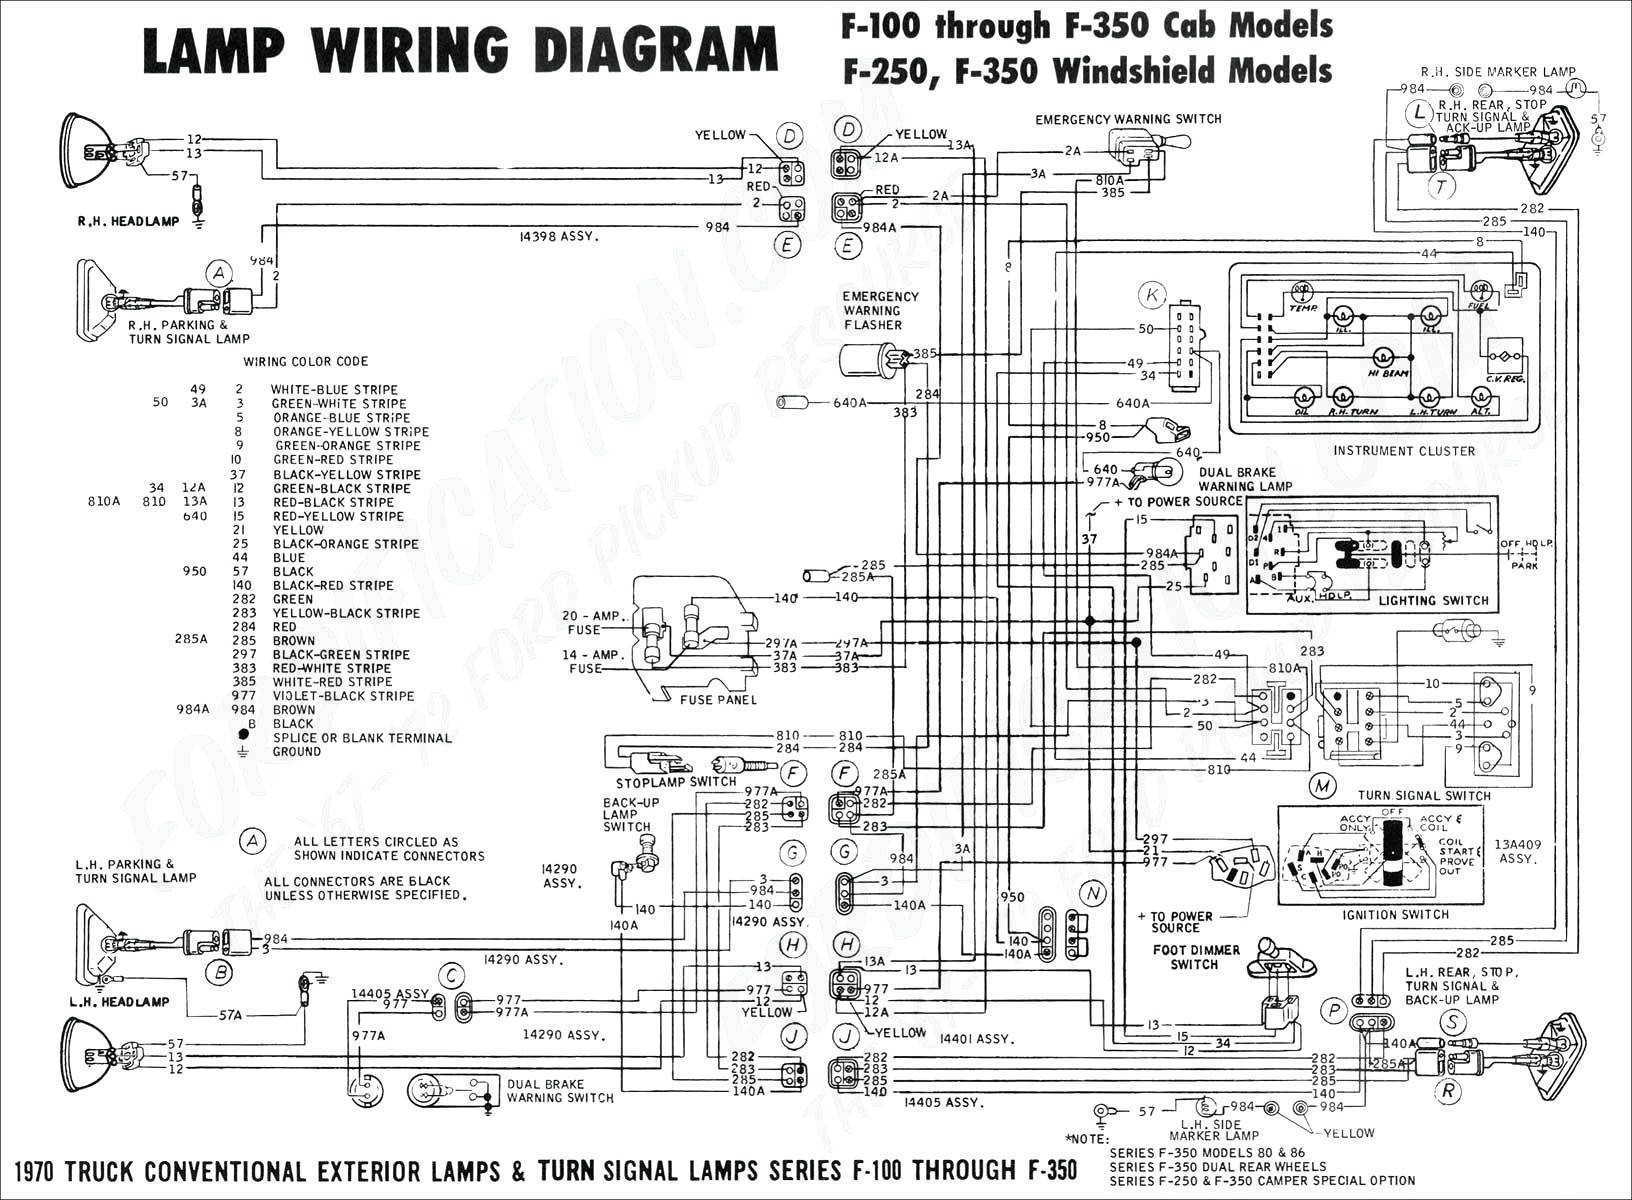 2002 ford Escape Engine Diagram 2002 ford Ranger Stereo ...  Ford Escape Stereo Wiring Diagram on